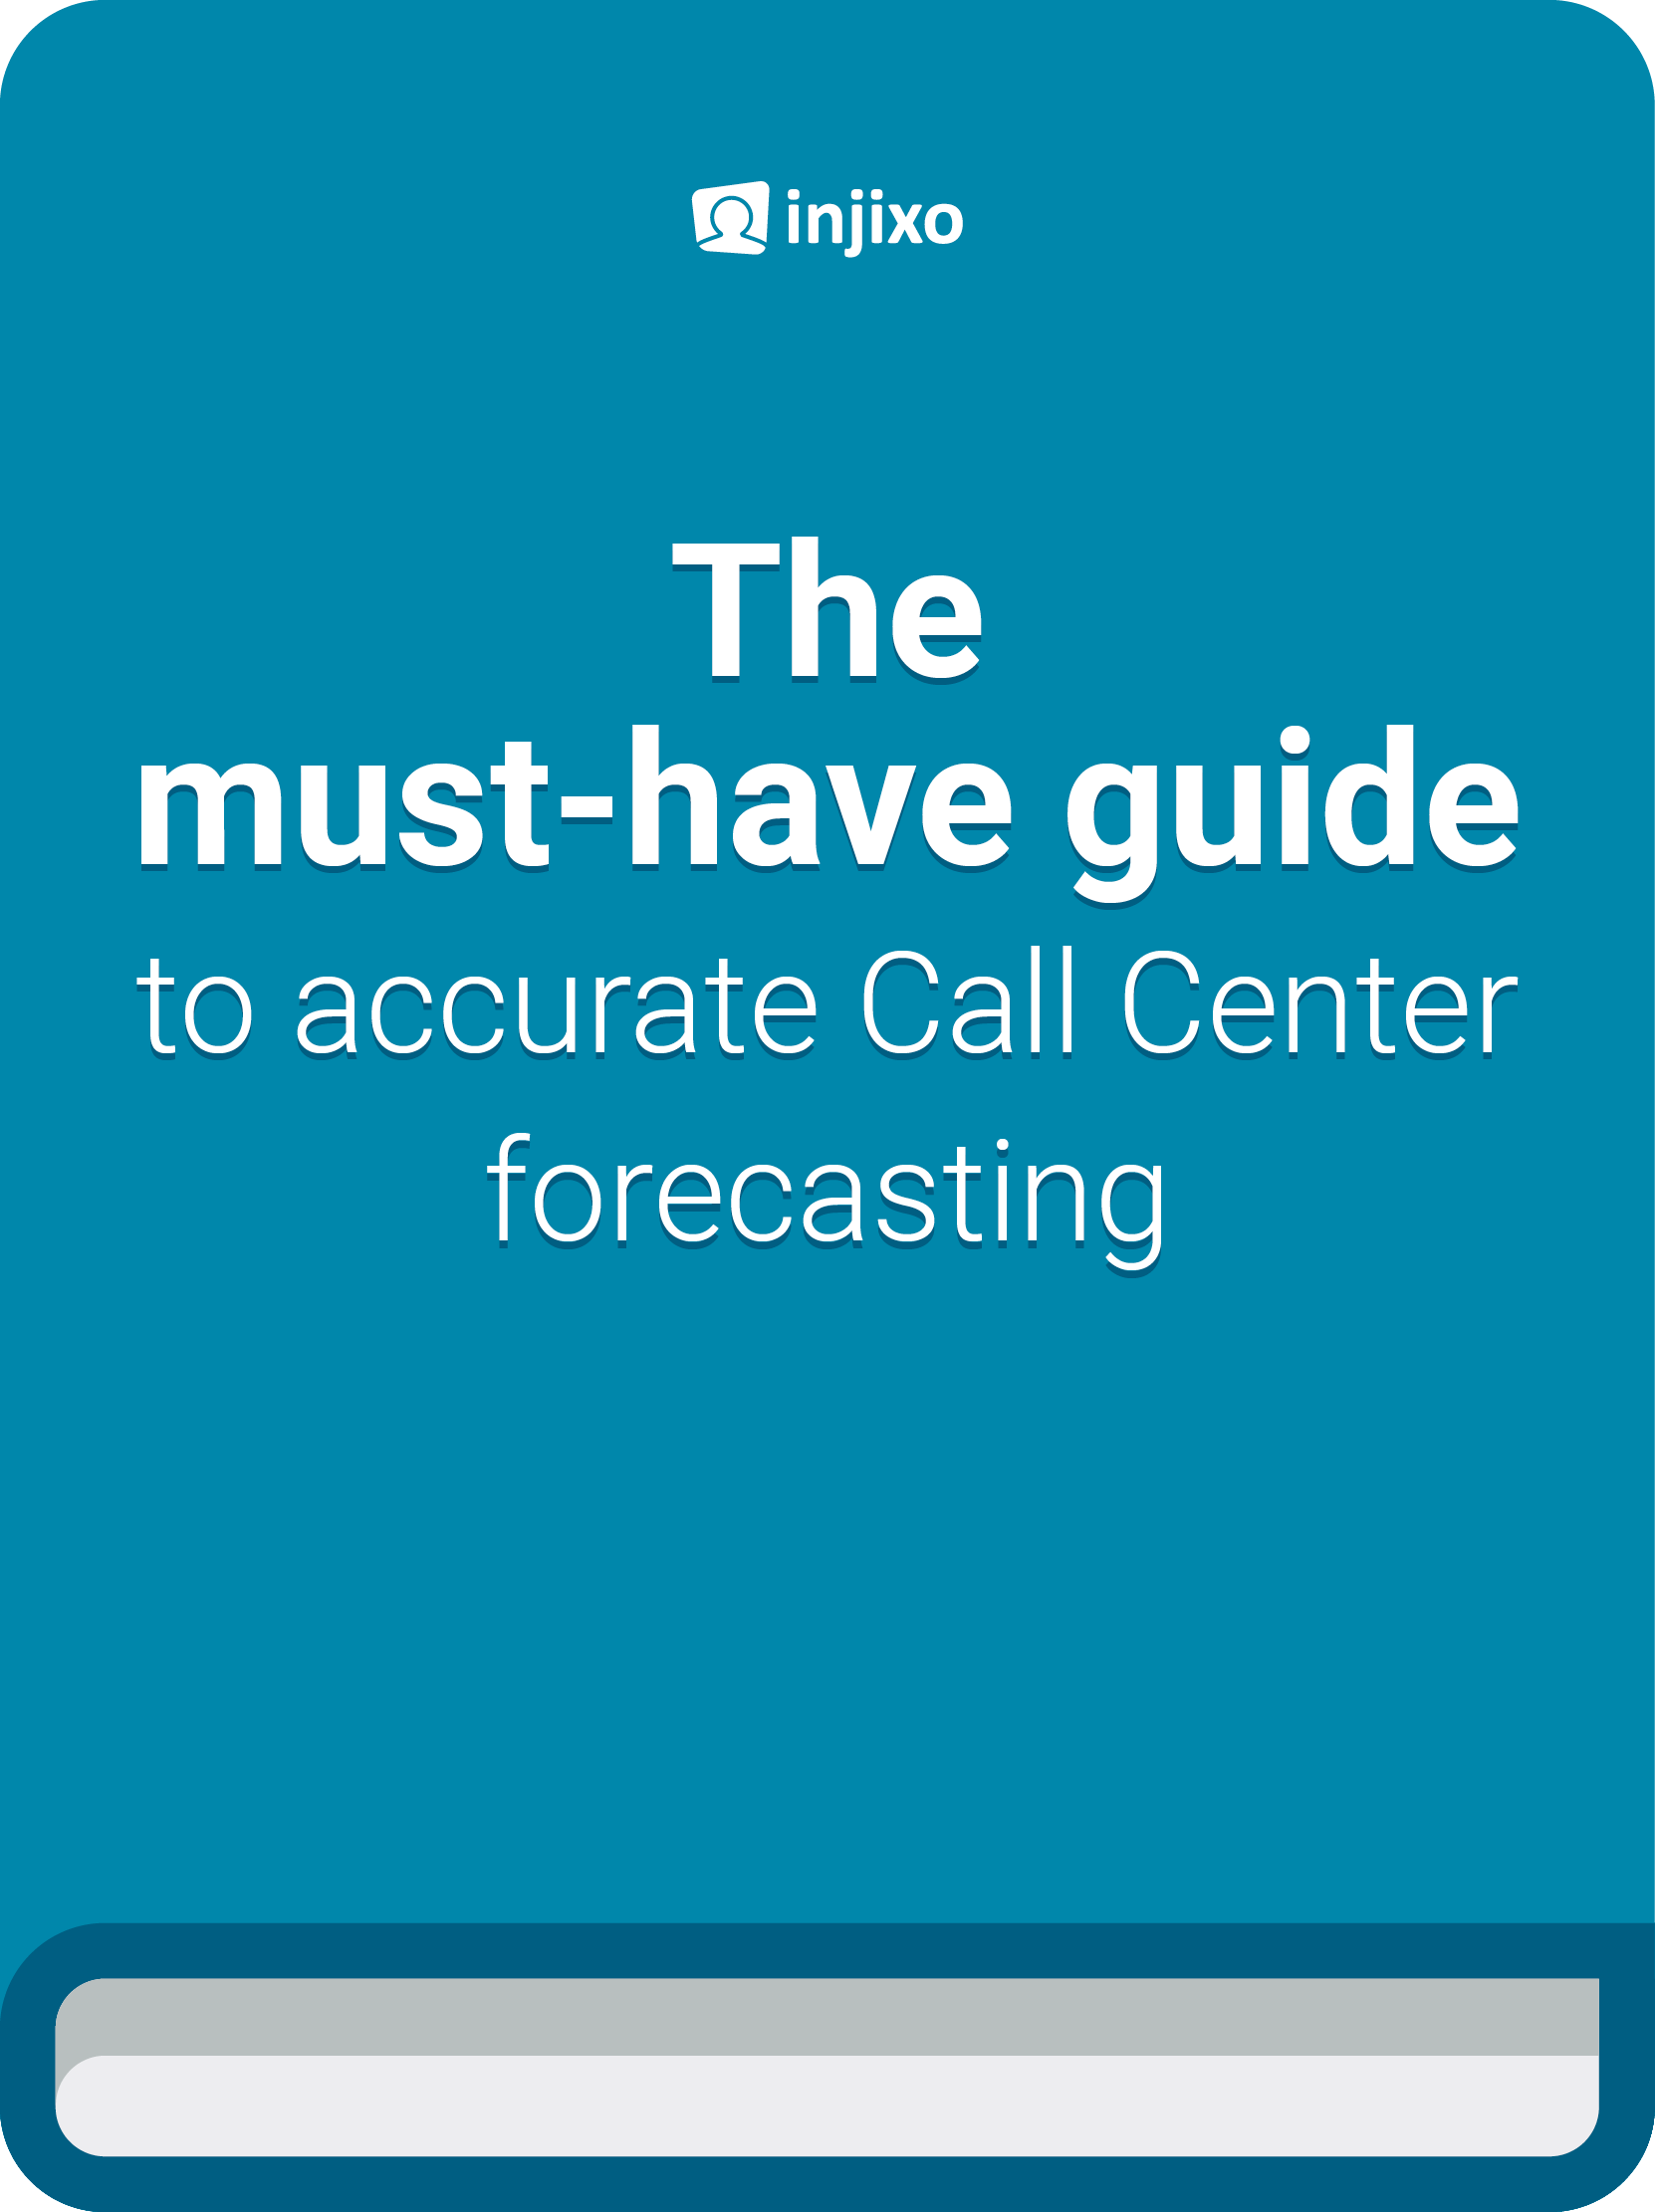 injixo-ebook-the-must-have-guide-to-accurate-call-center-forecasting-november-2016-edition-cover.png